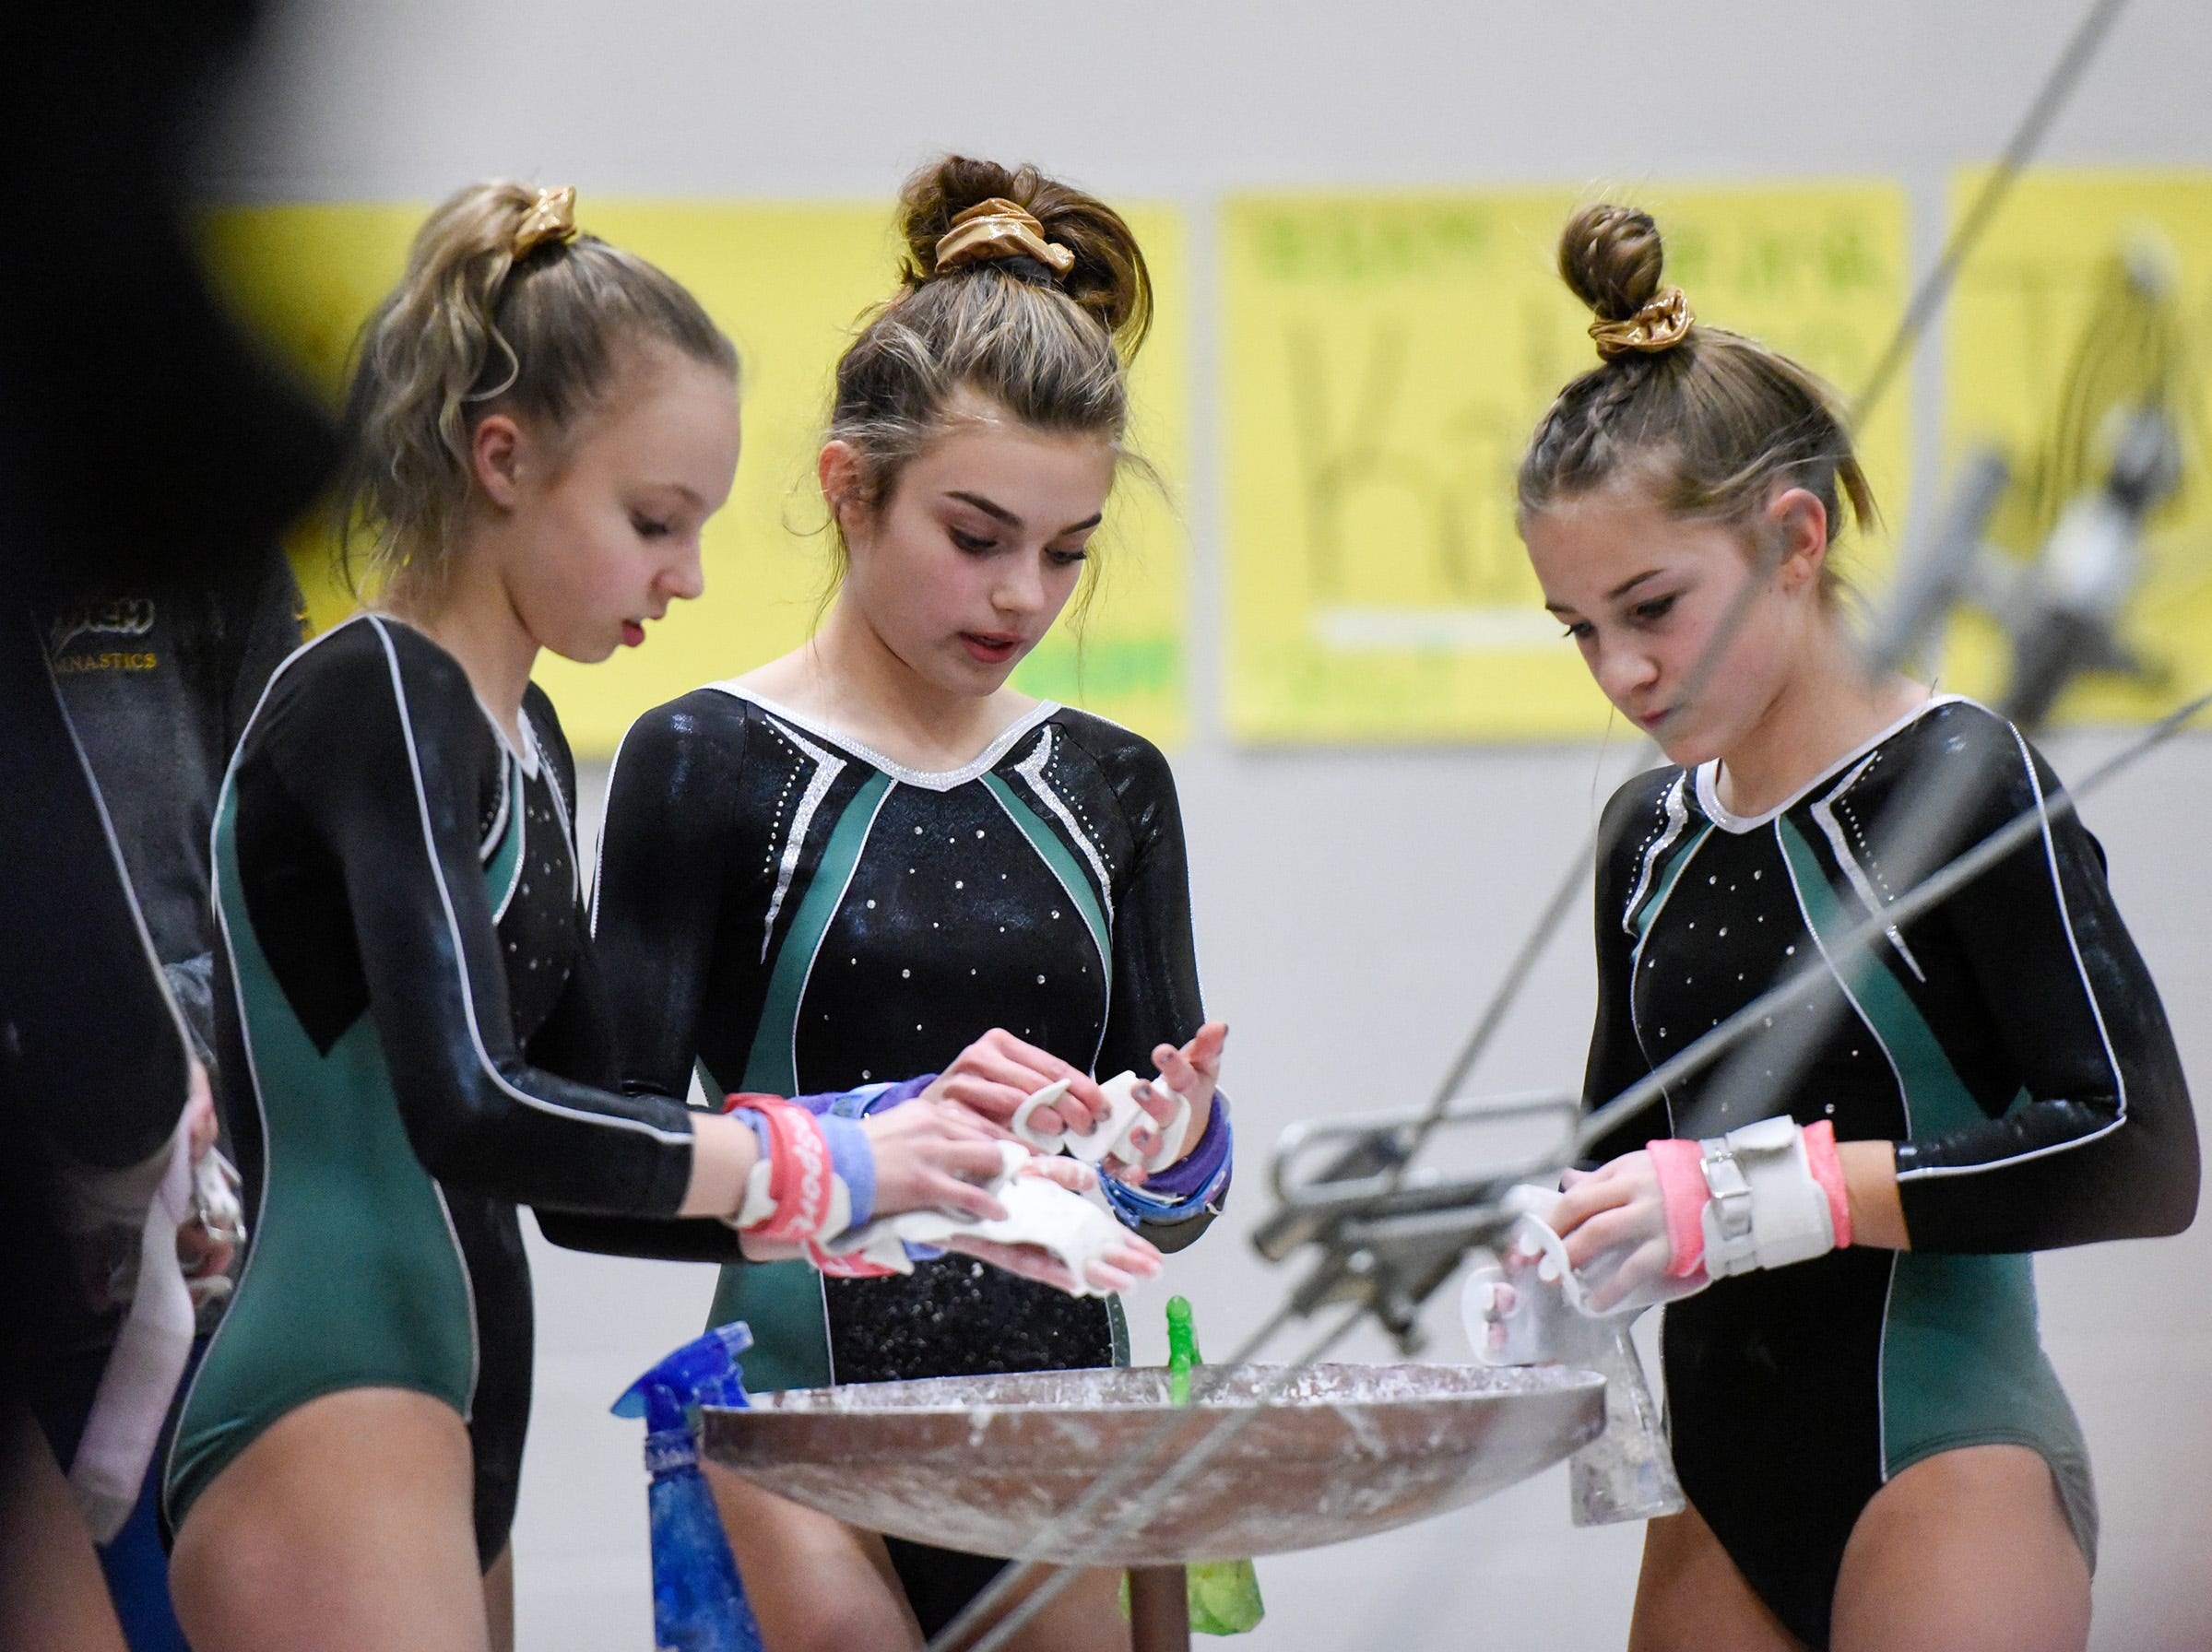 Sauk Rapids gymnasts get ready to compete on the bars Thursday, Jan. 3, at the Sauk Rapids-Rice High School.